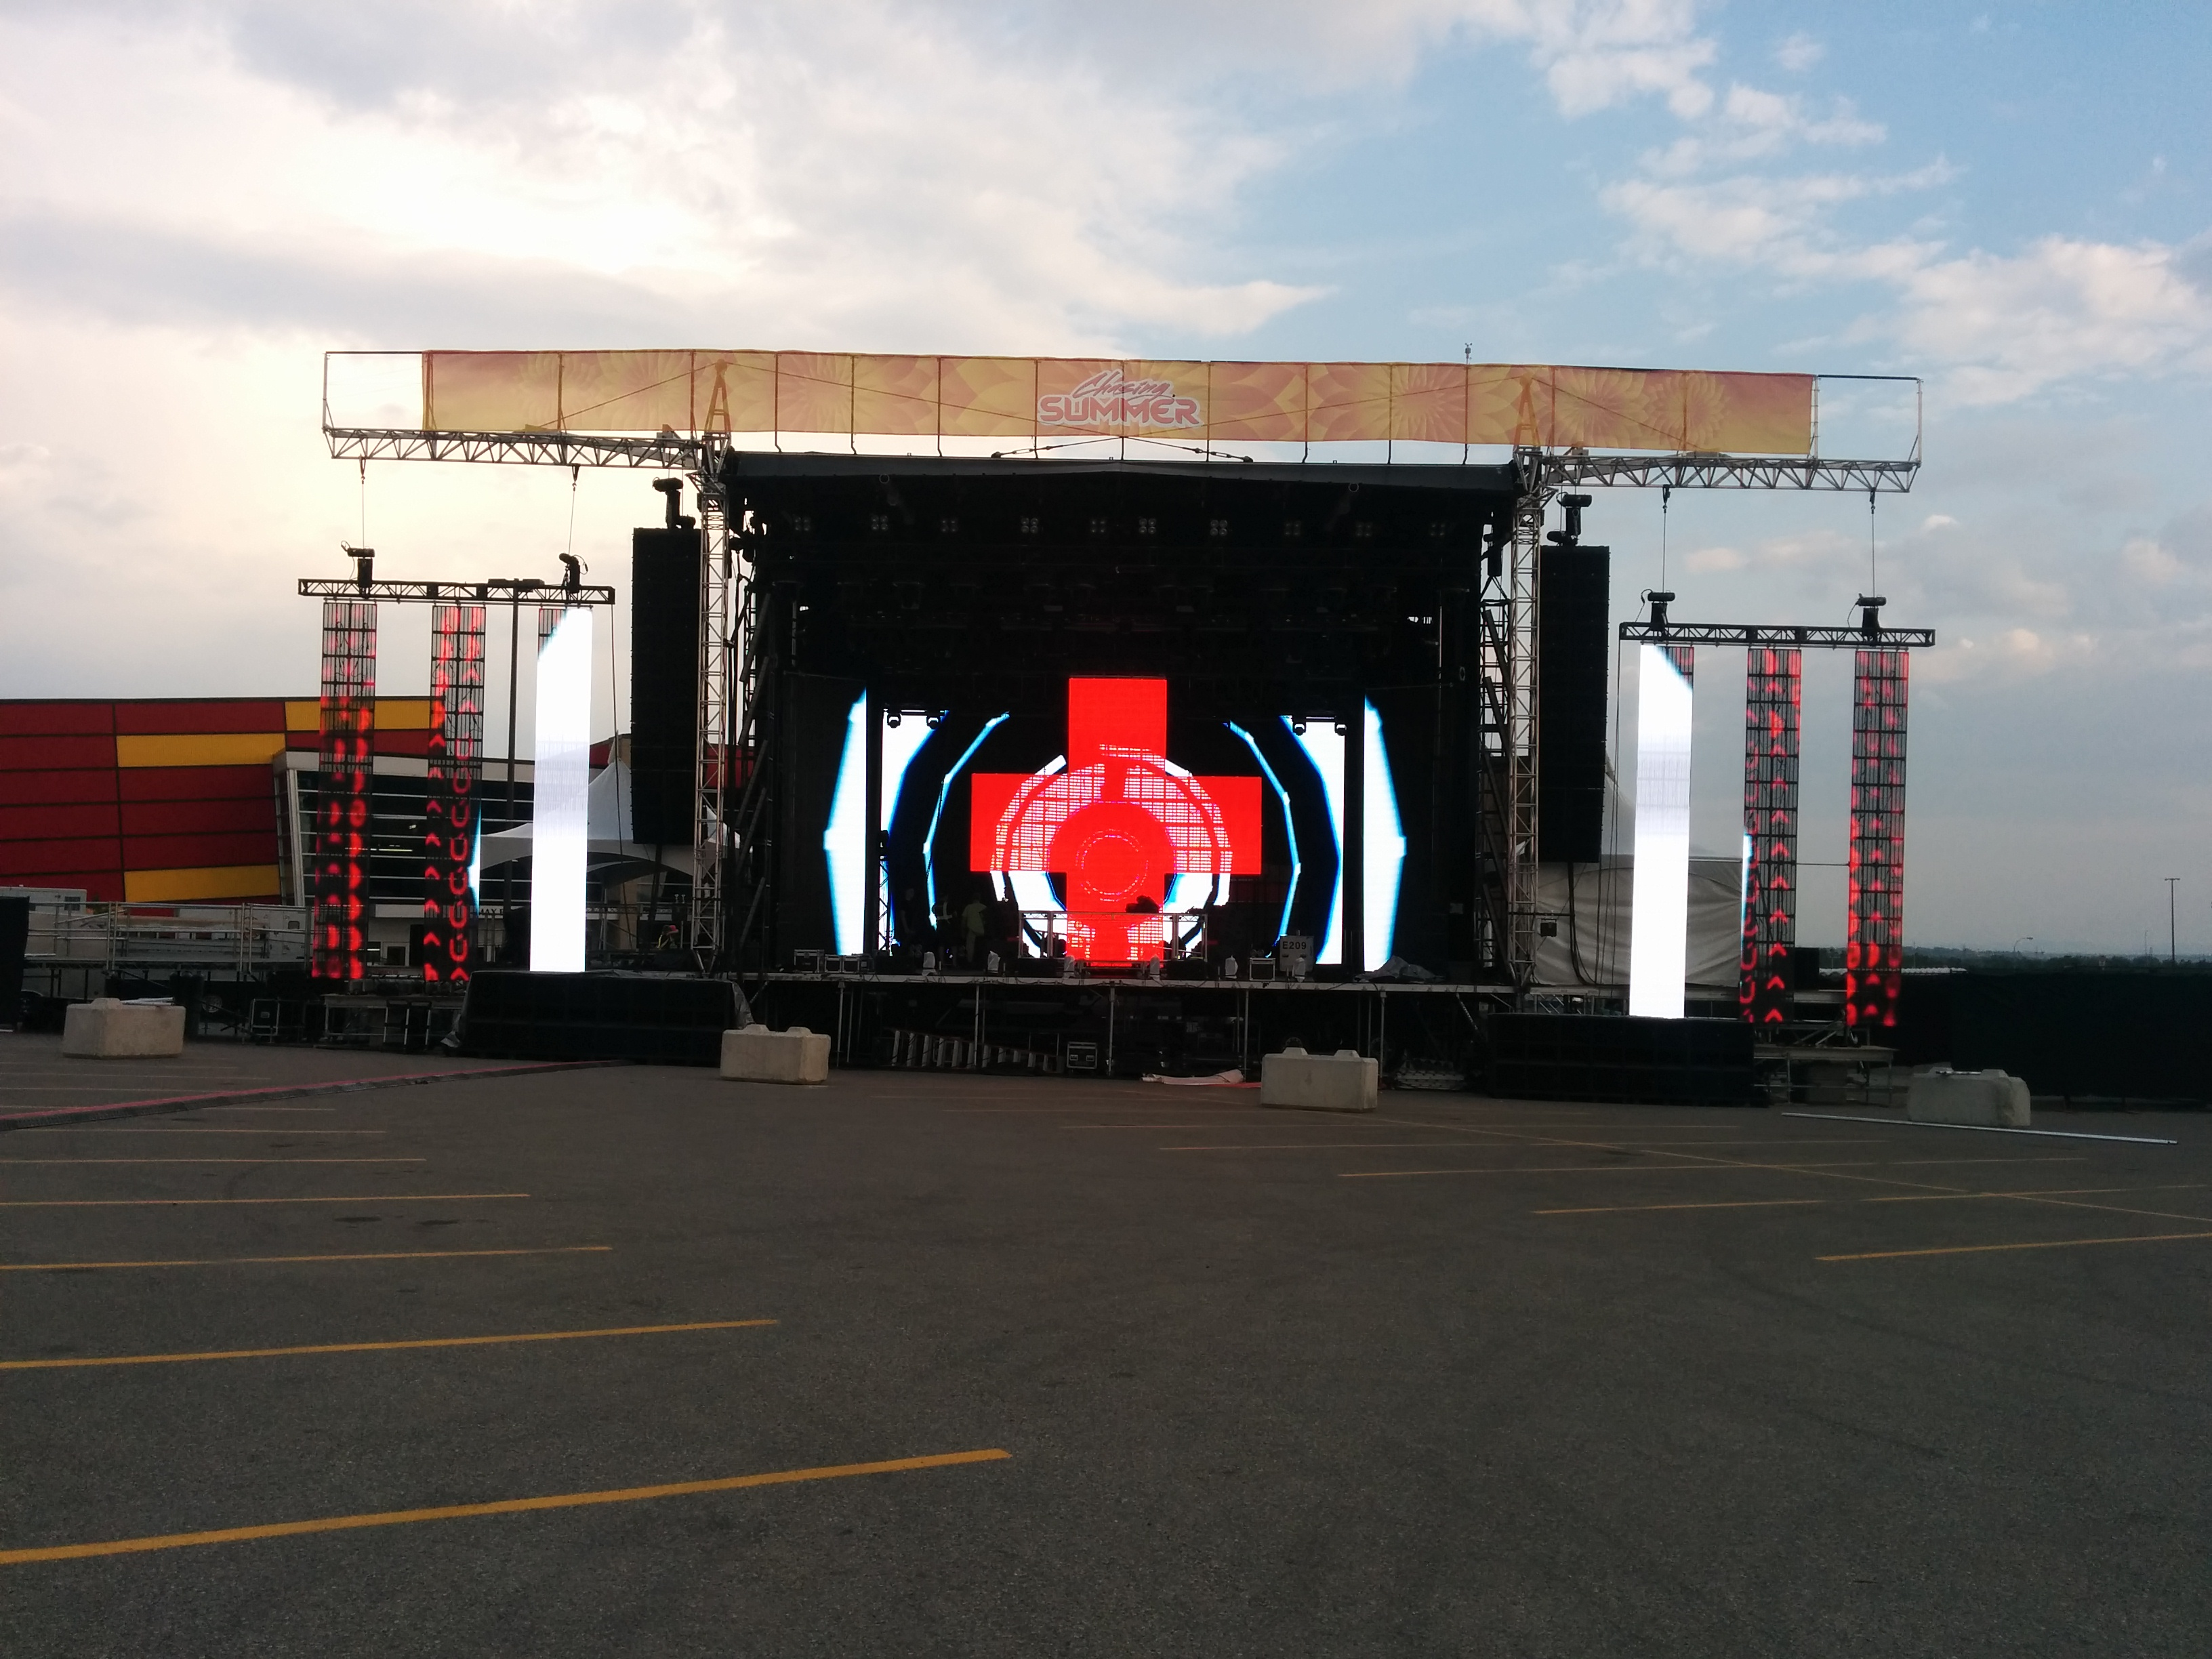 LED screens @ Chasing Summer